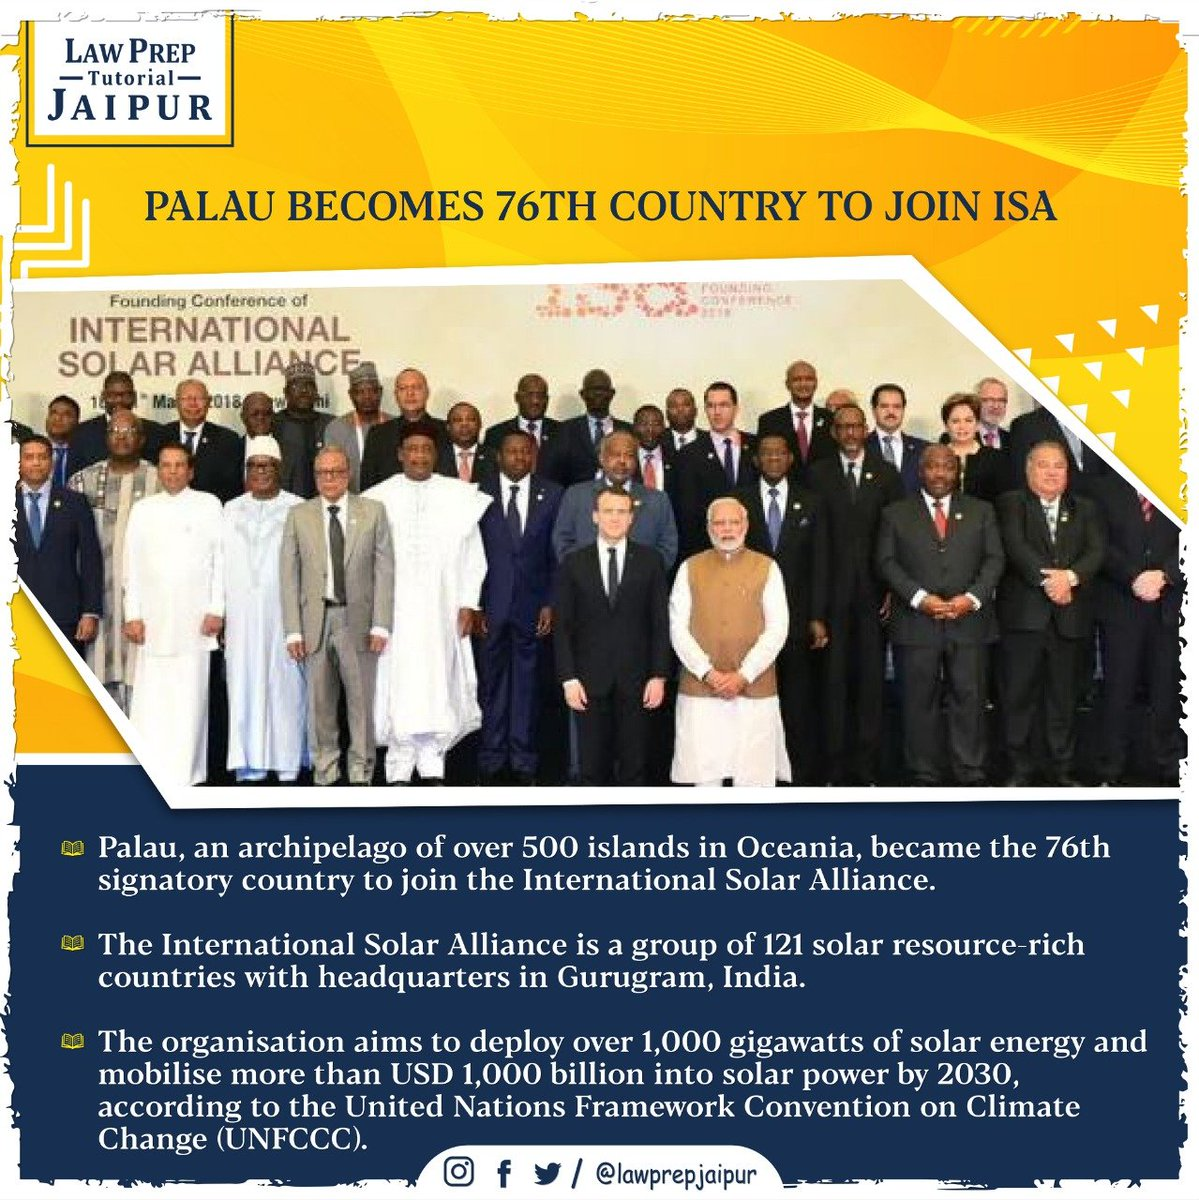 Stay connected for more such Current Affairs.  #Gk #CLATGK #CLAT2020 #CLATQuestions #currentaffairs #LegalGk #PALAU #ISA #InternationalSolarAlliance